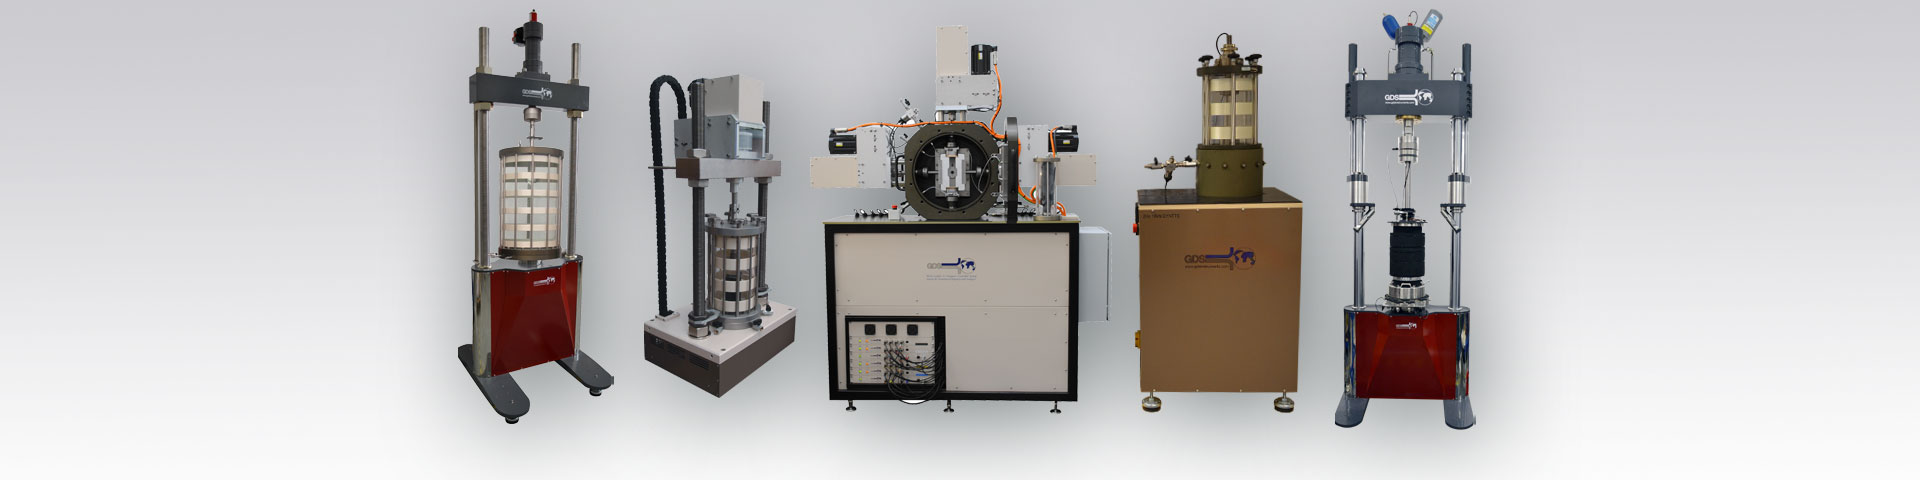 GDS Has Supplied Over 300 Dynamic Triaxial Testing Systems Worldwide